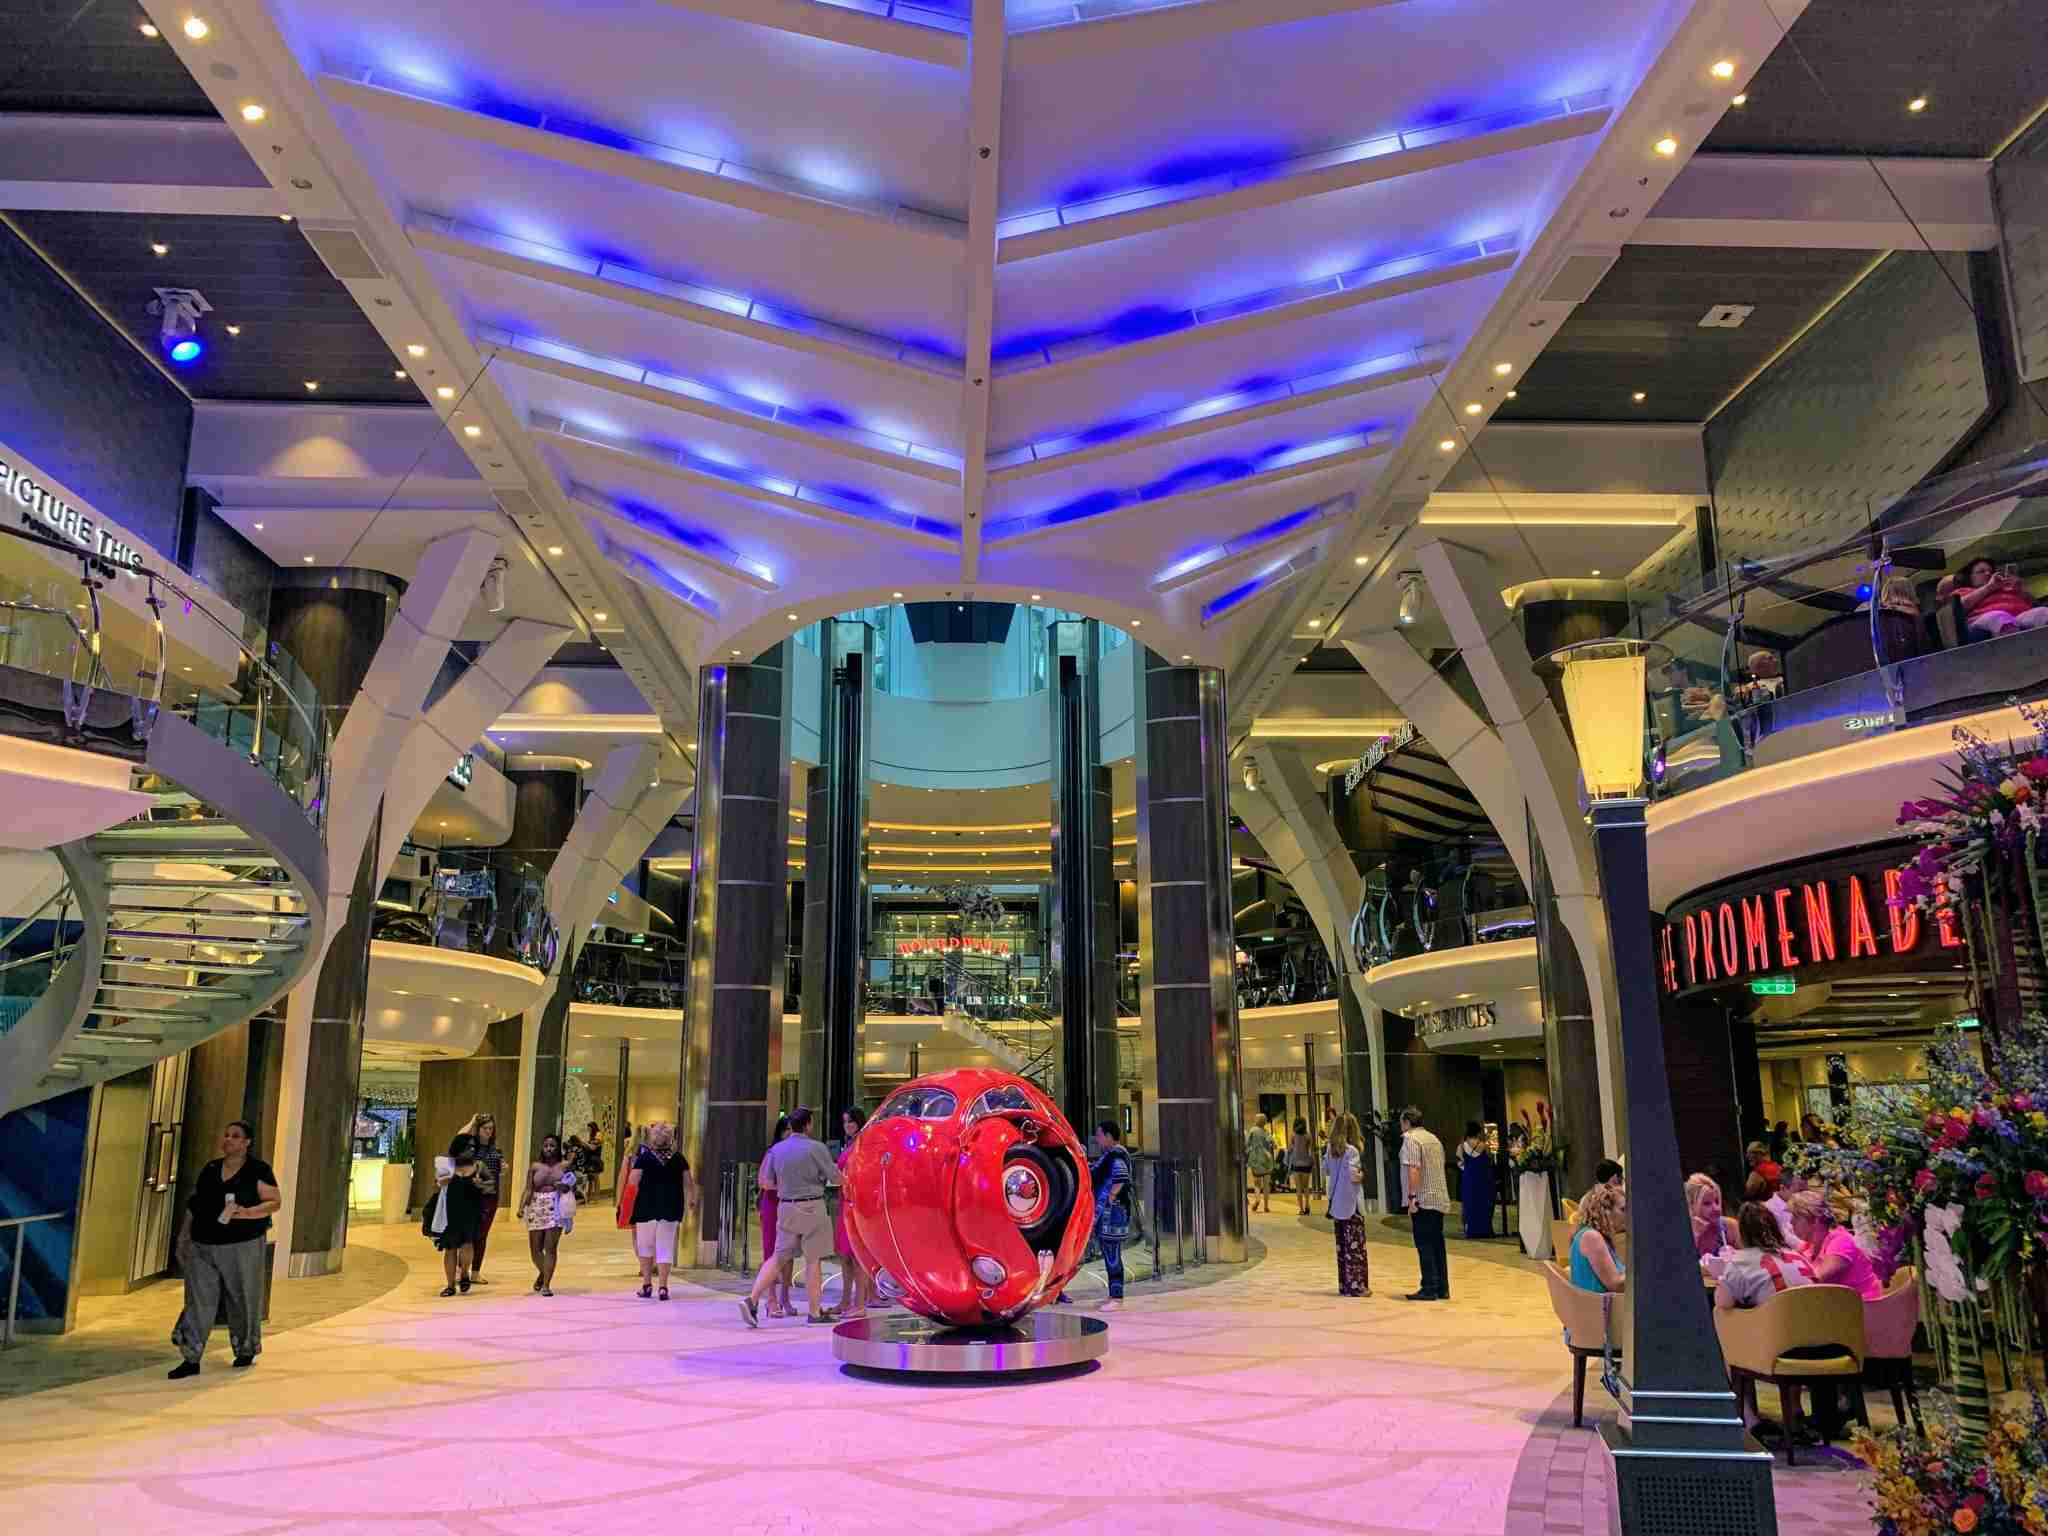 Royal Caribbean Symphony of the Seas - Royal Promenade